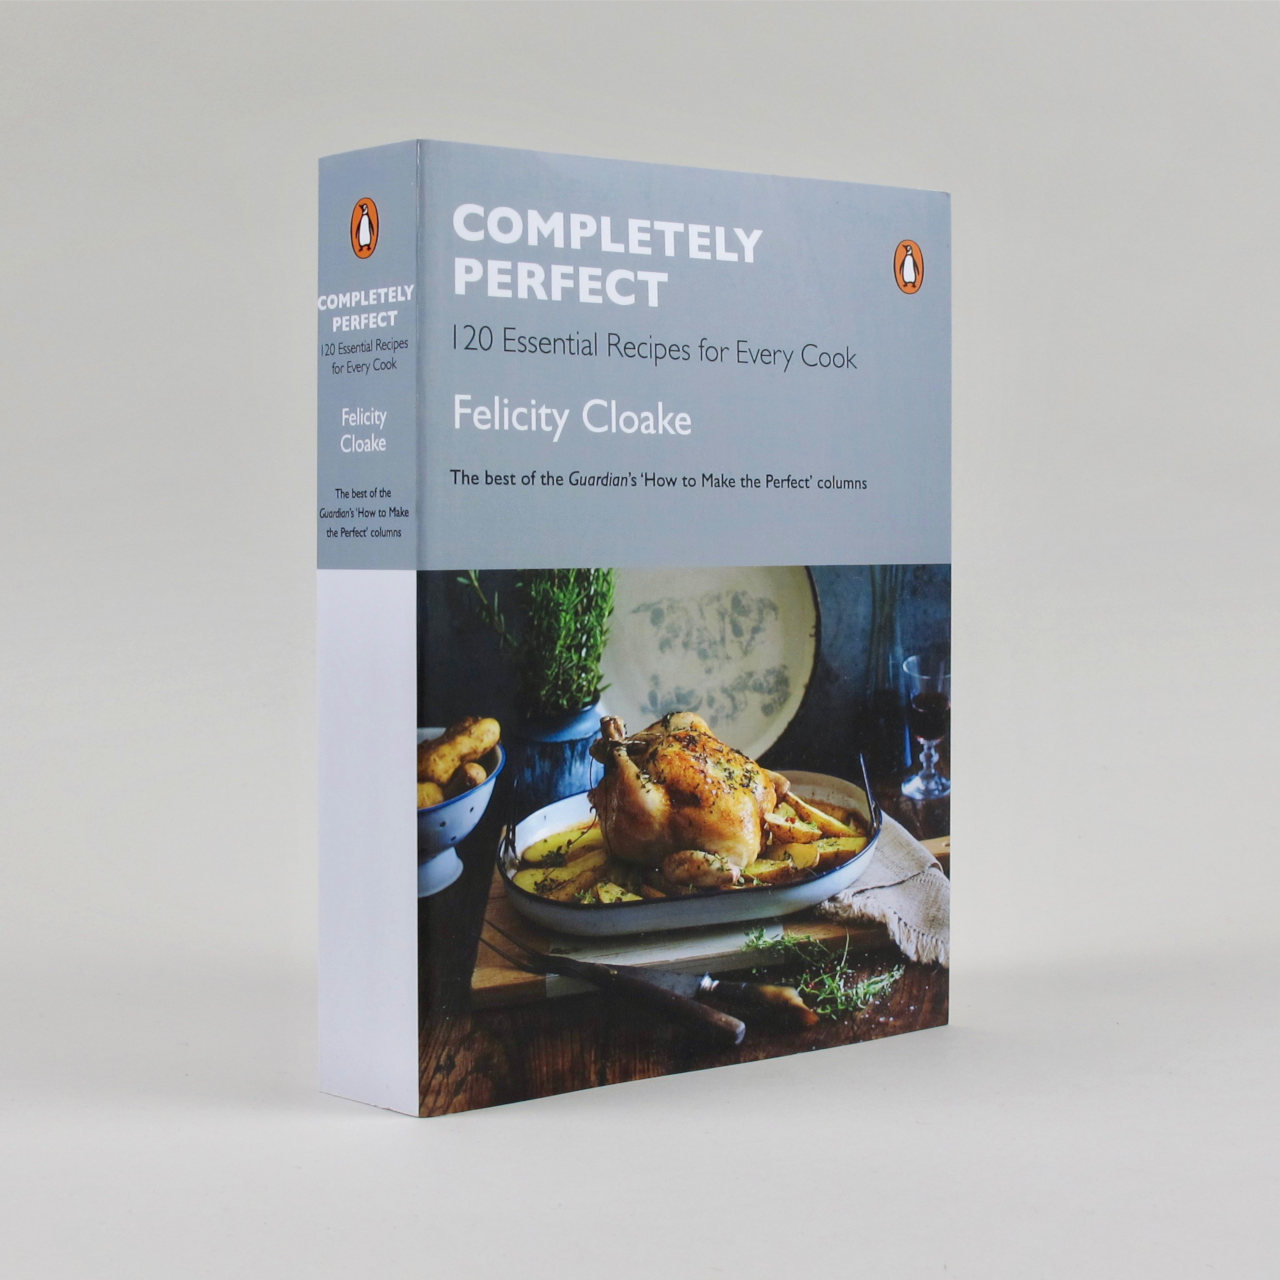 Completely Perfect - Felicity Cloake